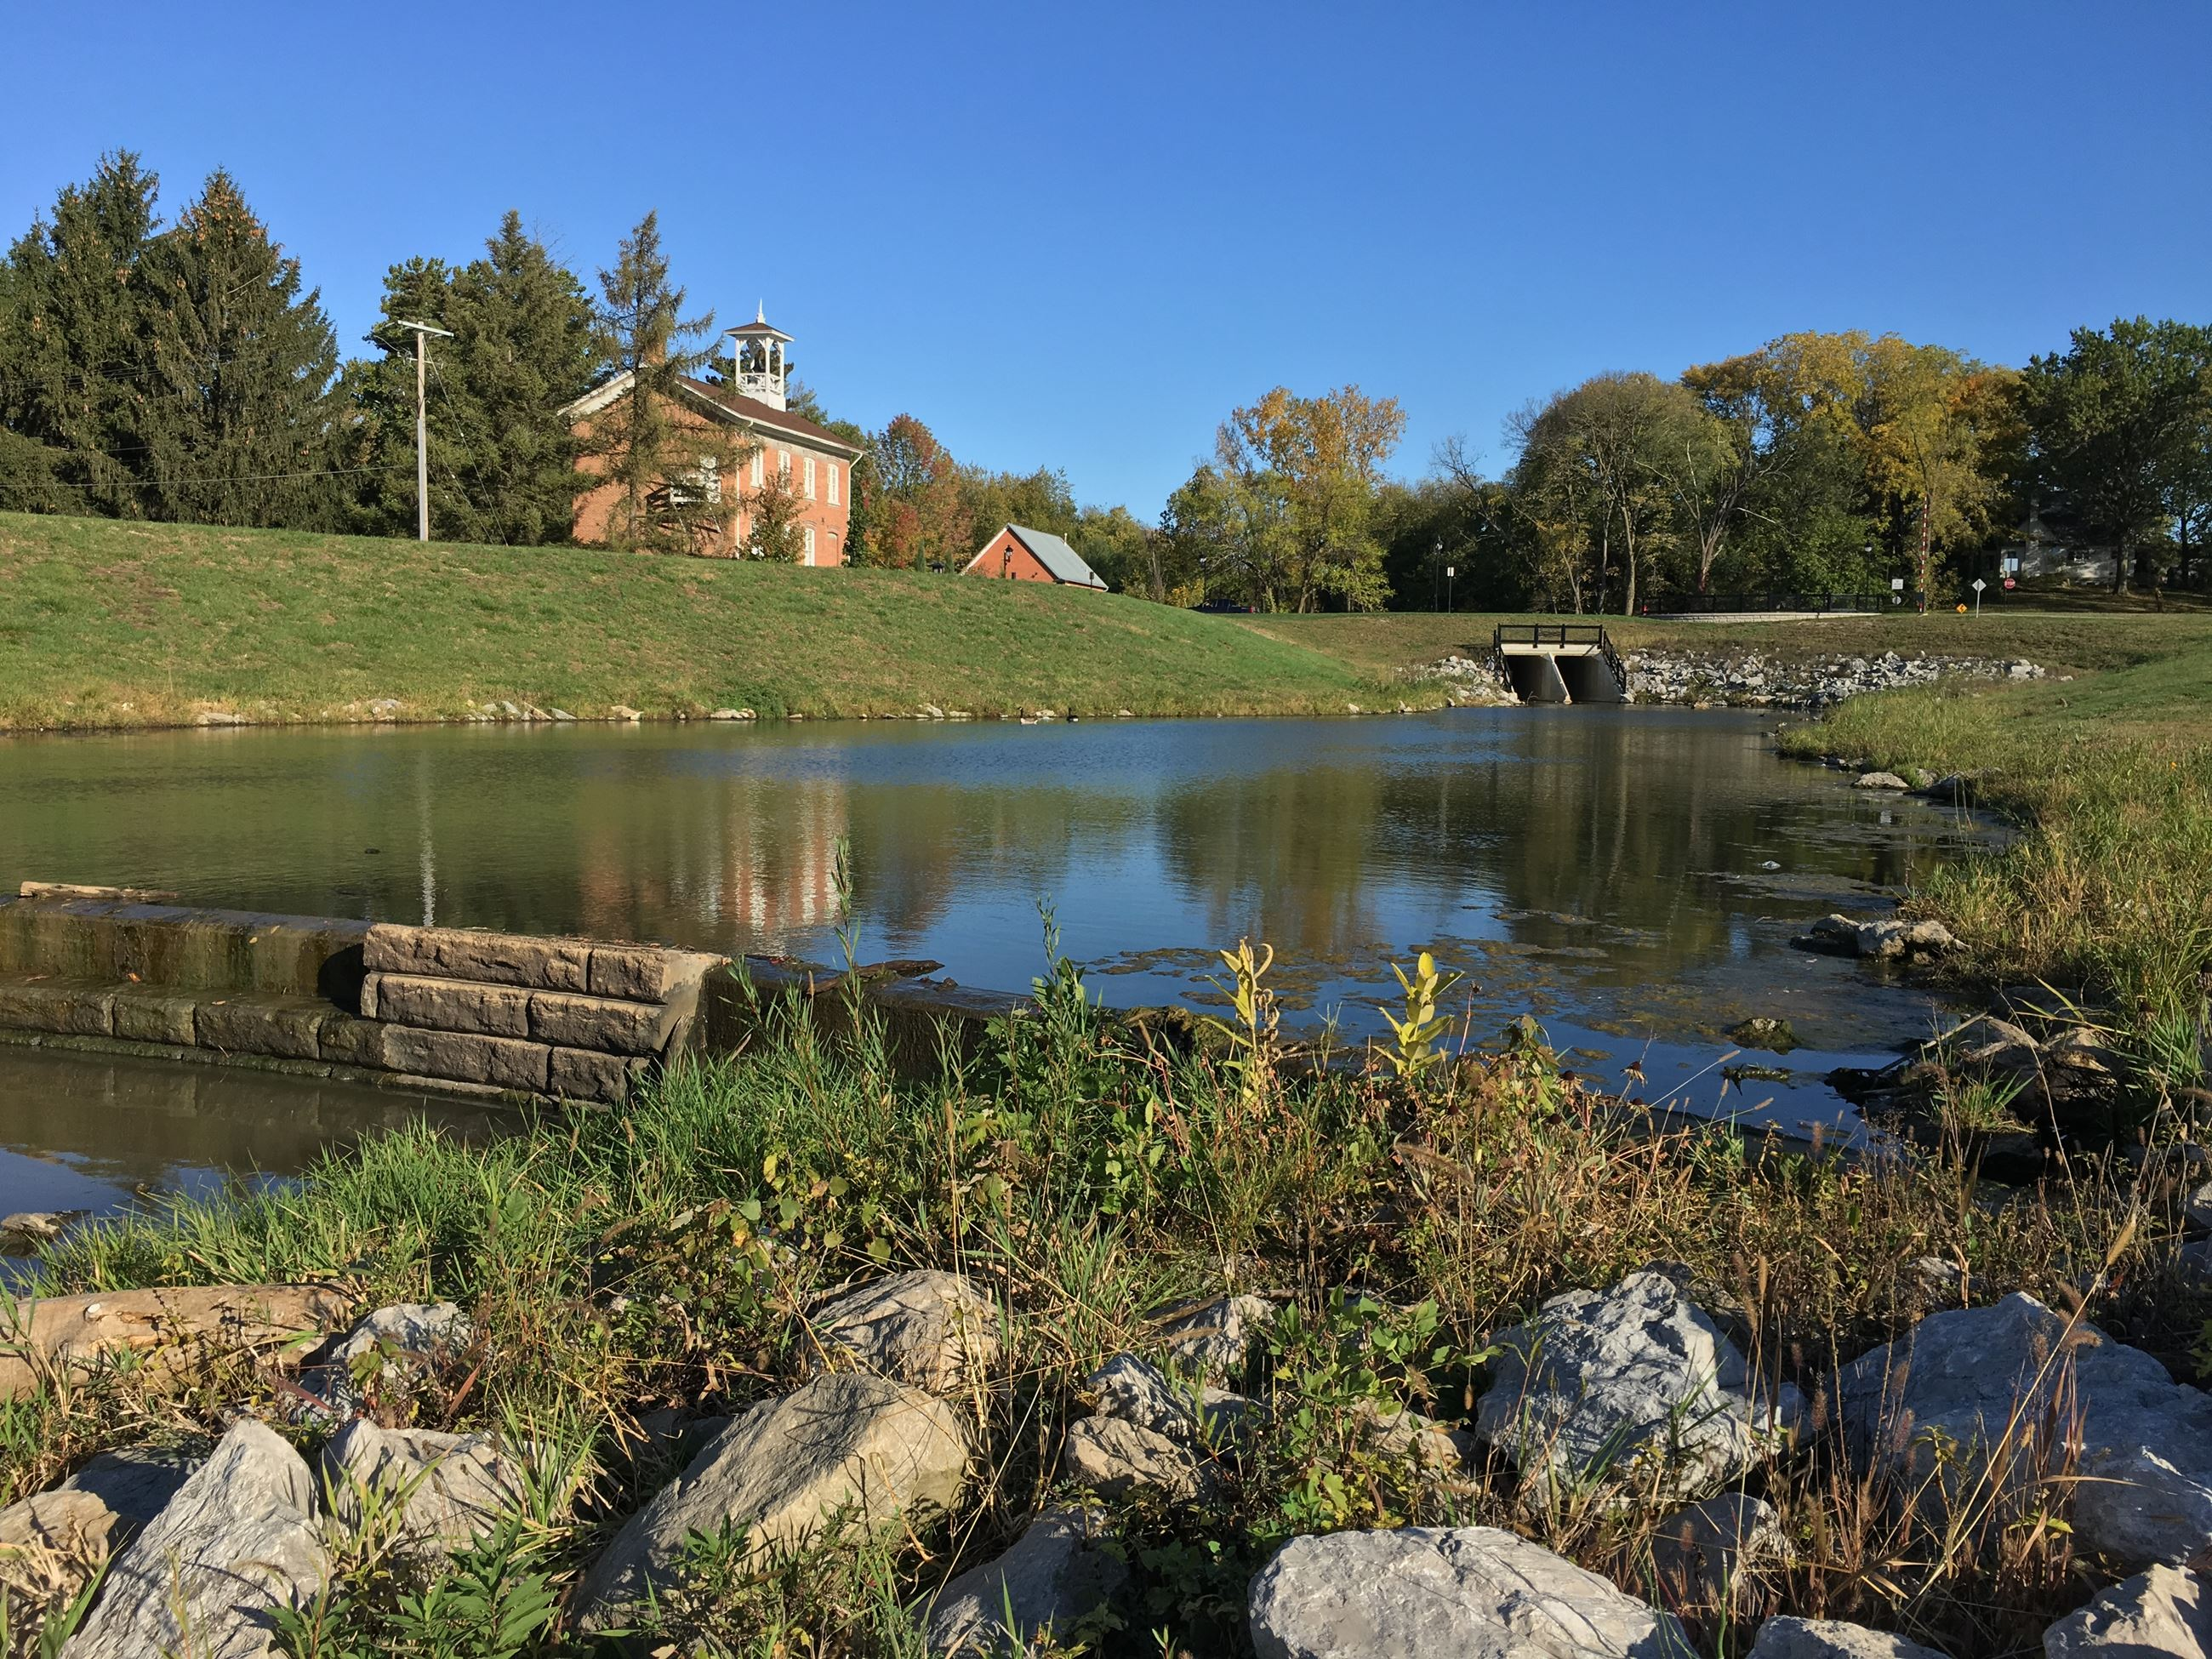 Stormwater retention ponds along Biscuit Creek